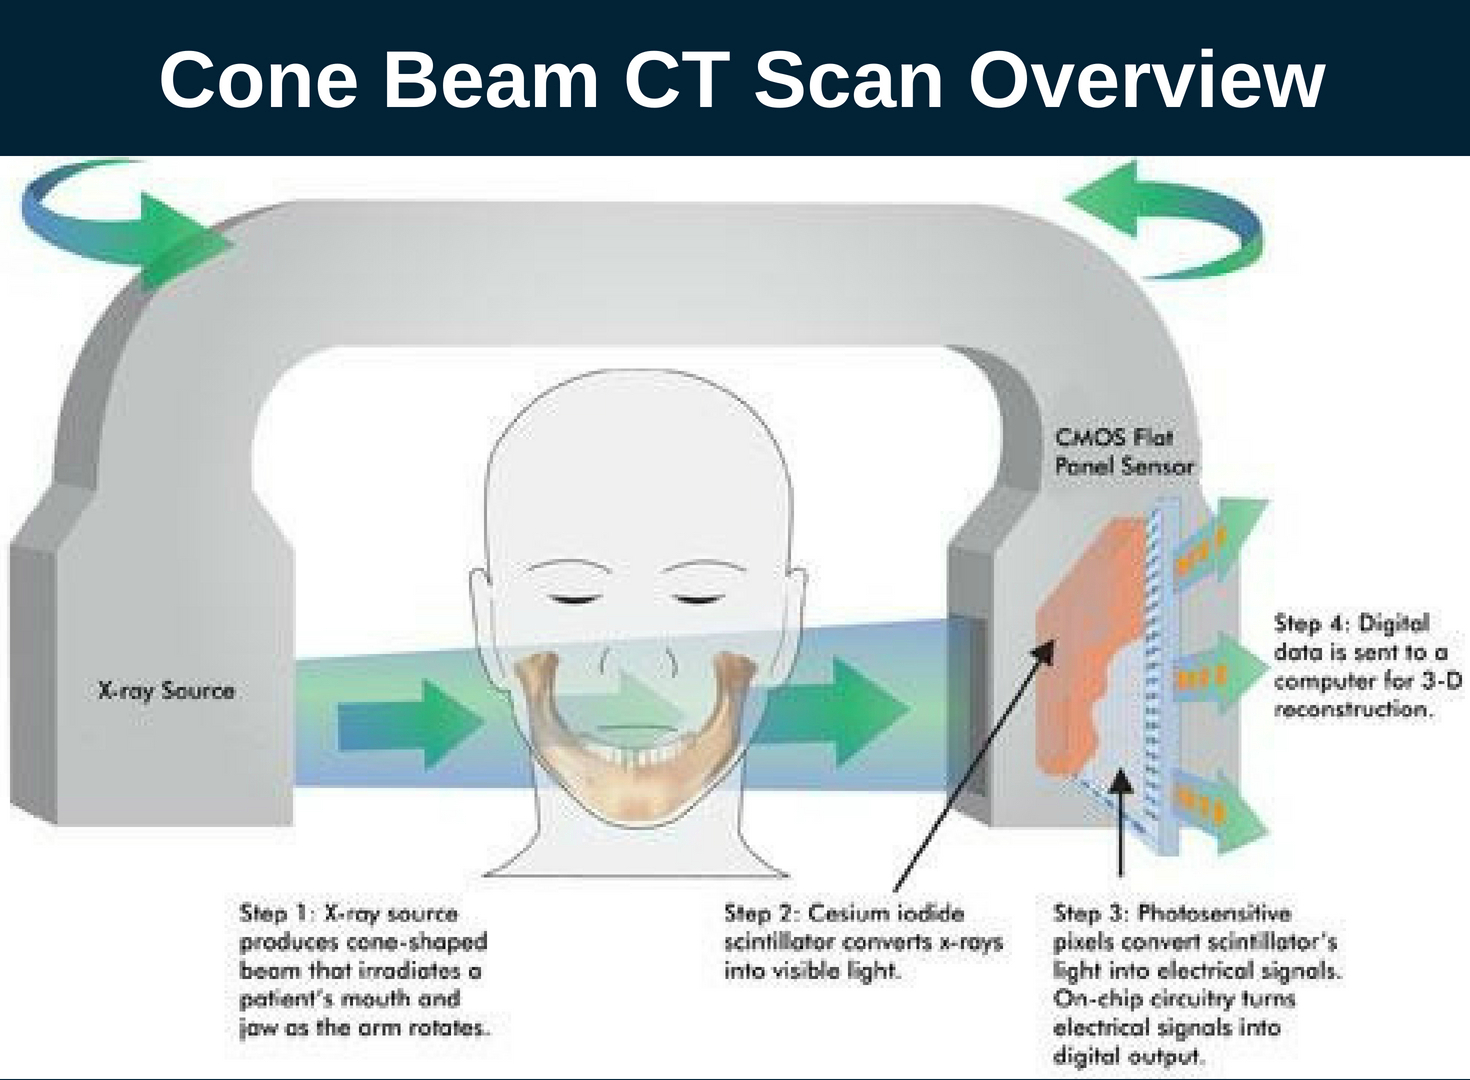 Cone Beam CT Scan Overview